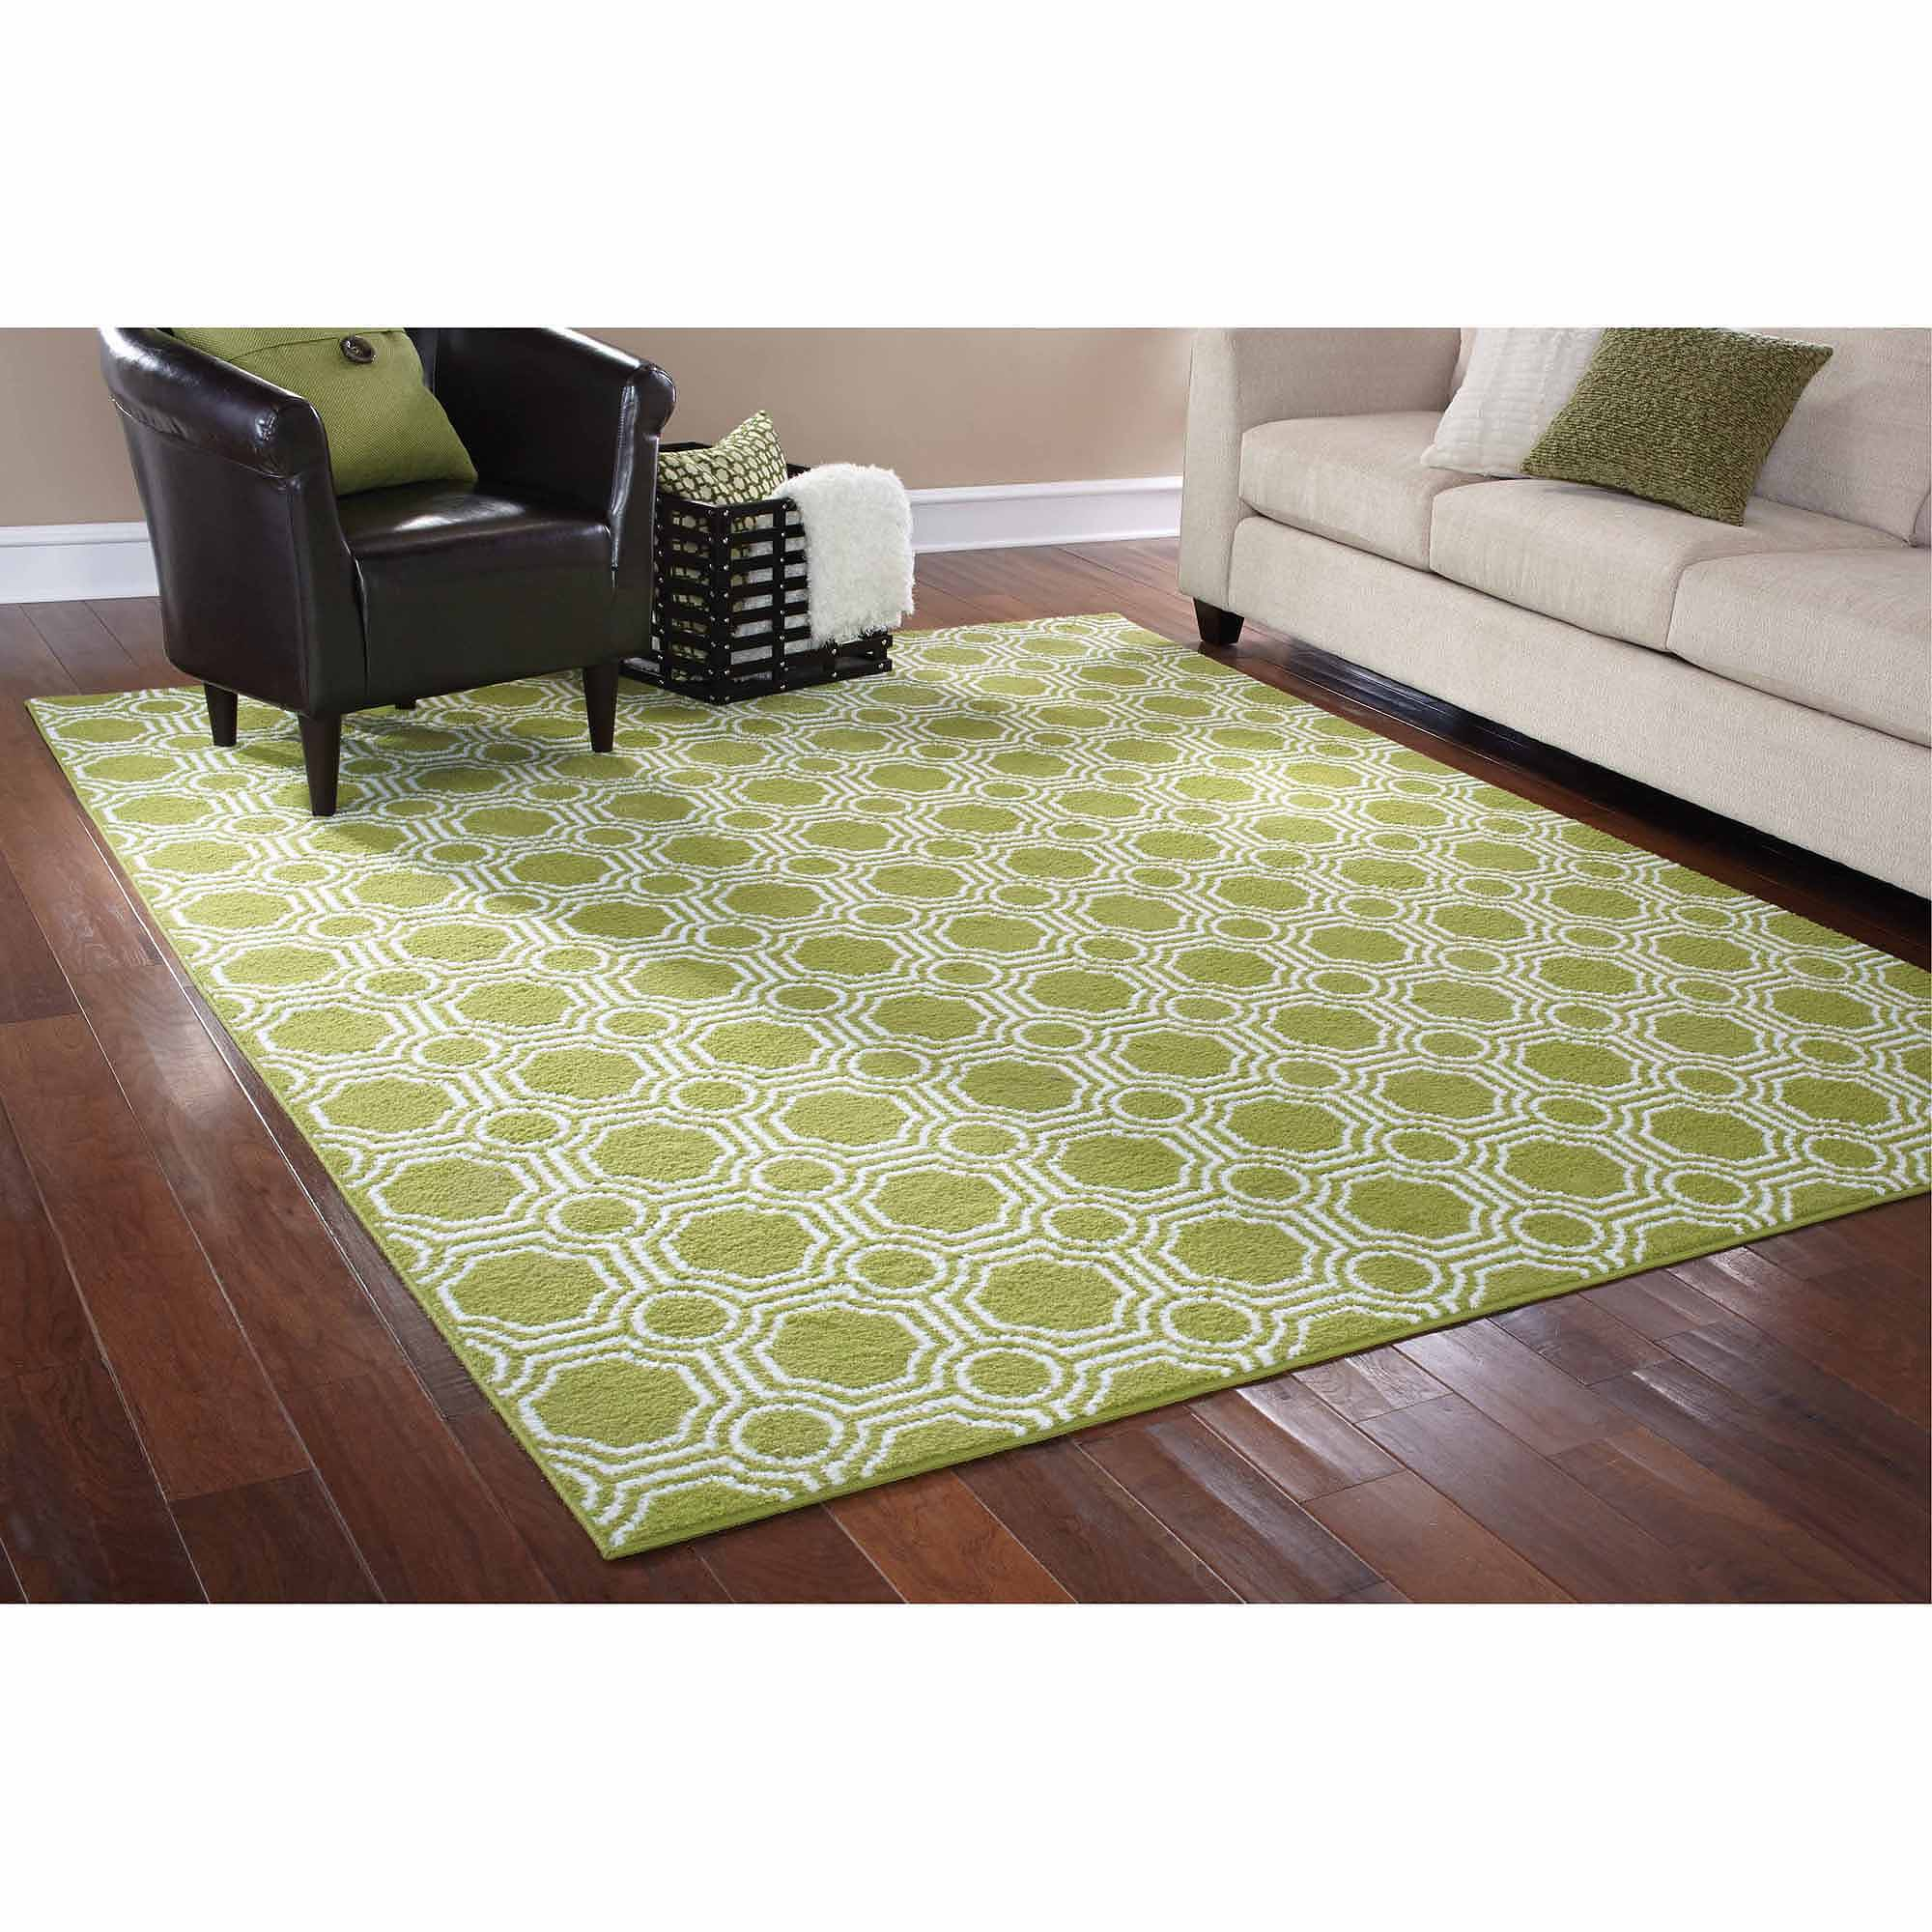 Mainstays Rug in a Bag Mosaic Area Rug, Green/White